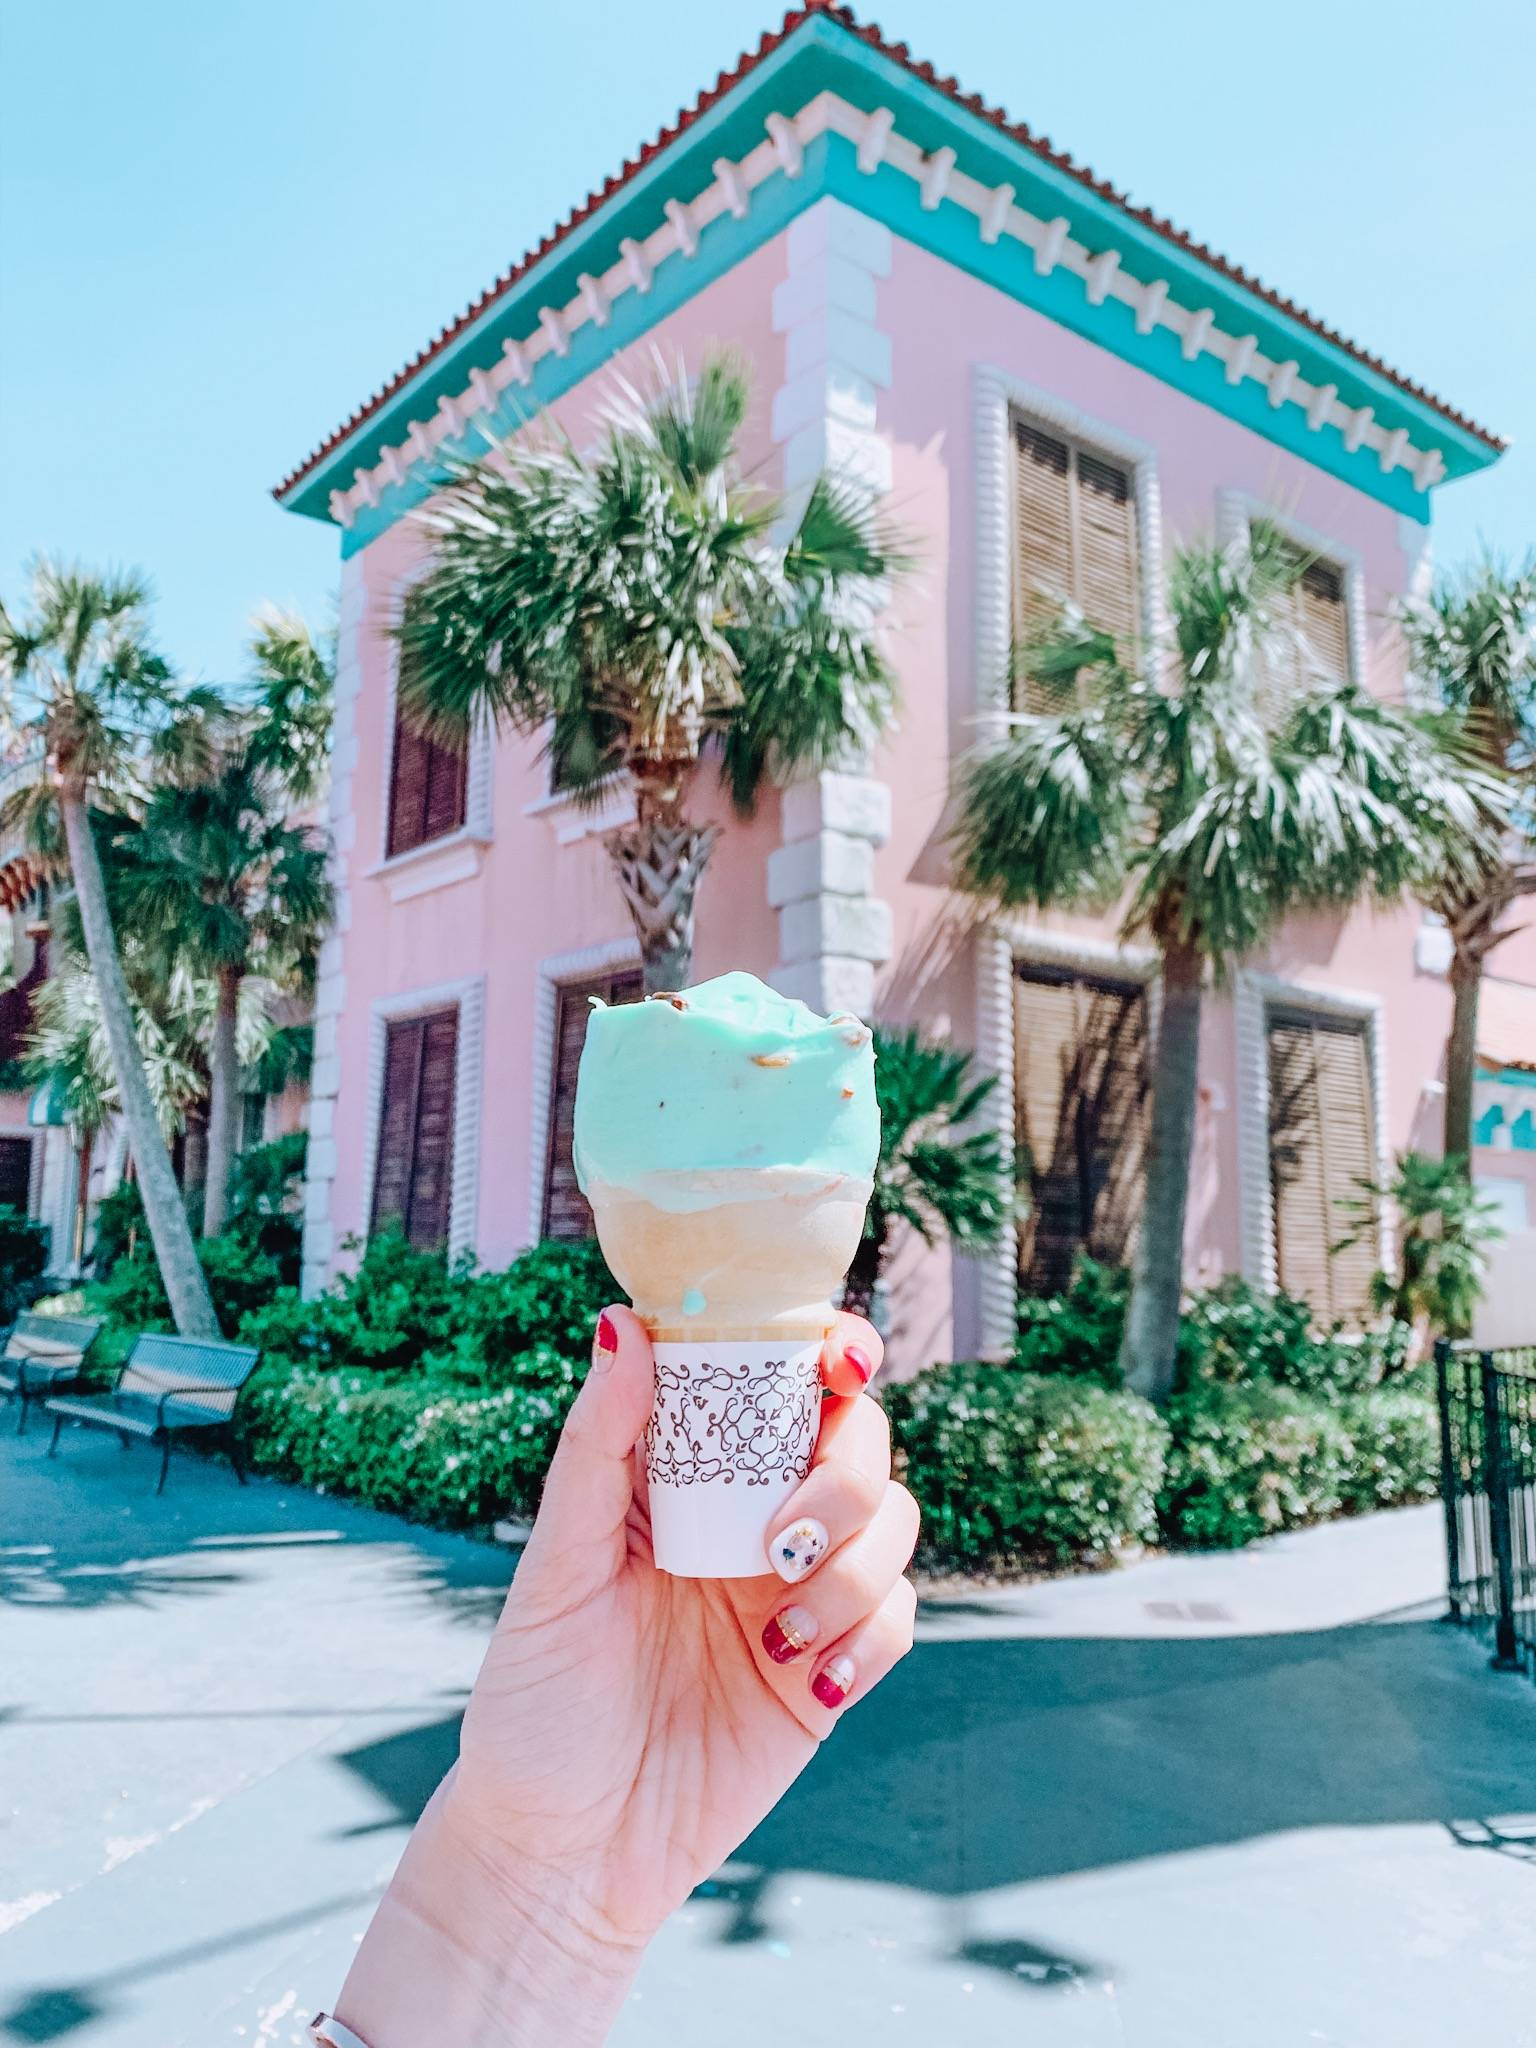 The best things to do in Myrtle Beach- including a trip to Broadway at the Beach. Find out where to eat, shop, and what to see in Myrtle Beach.